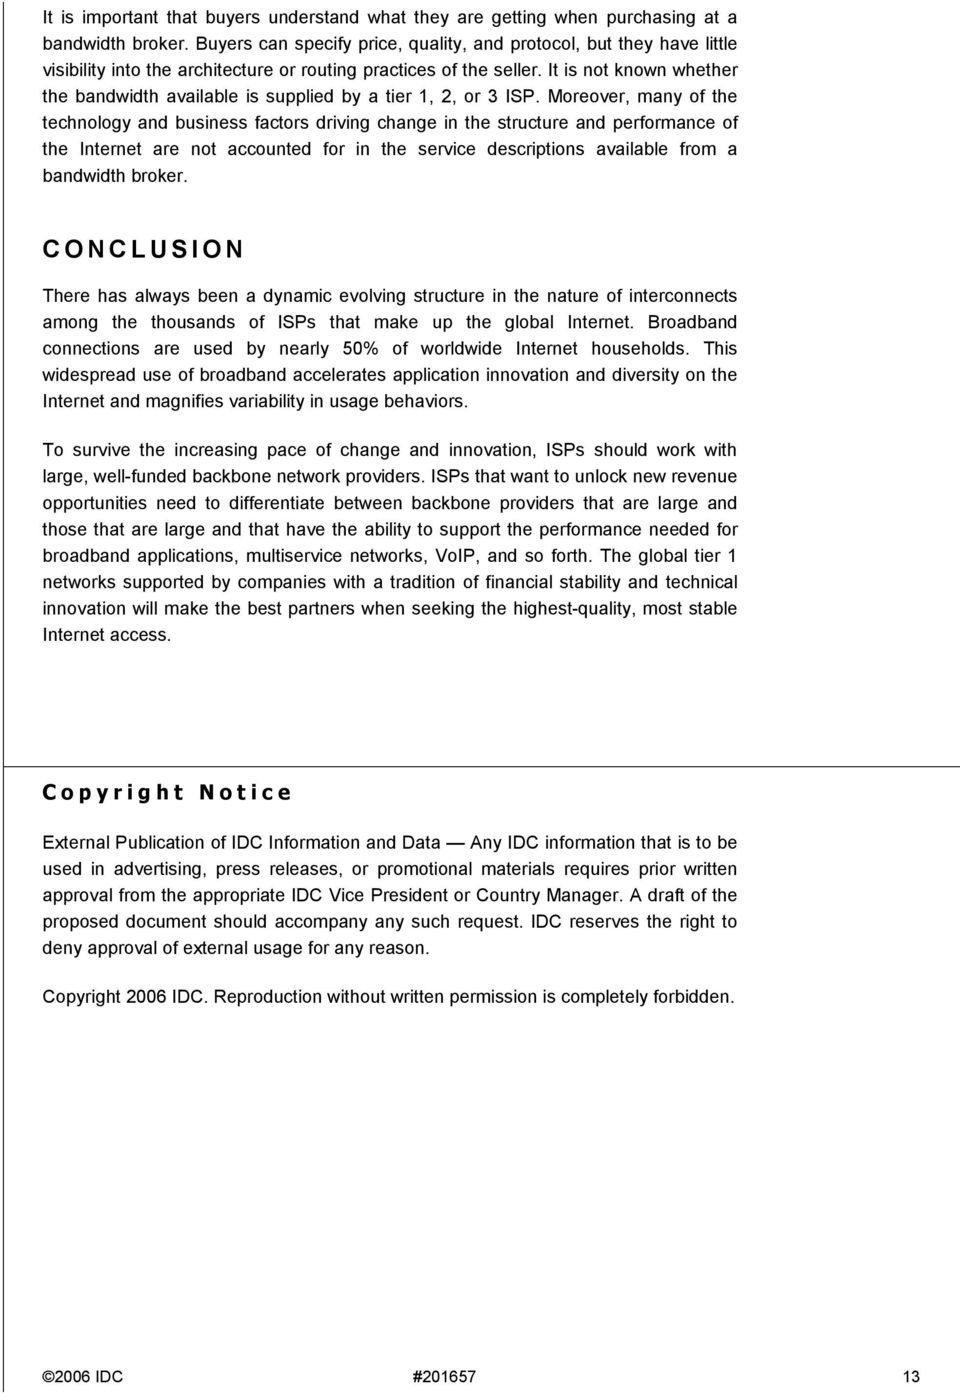 It is not known whether the bandwidth available is supplied by a tier 1, 2, or 3.